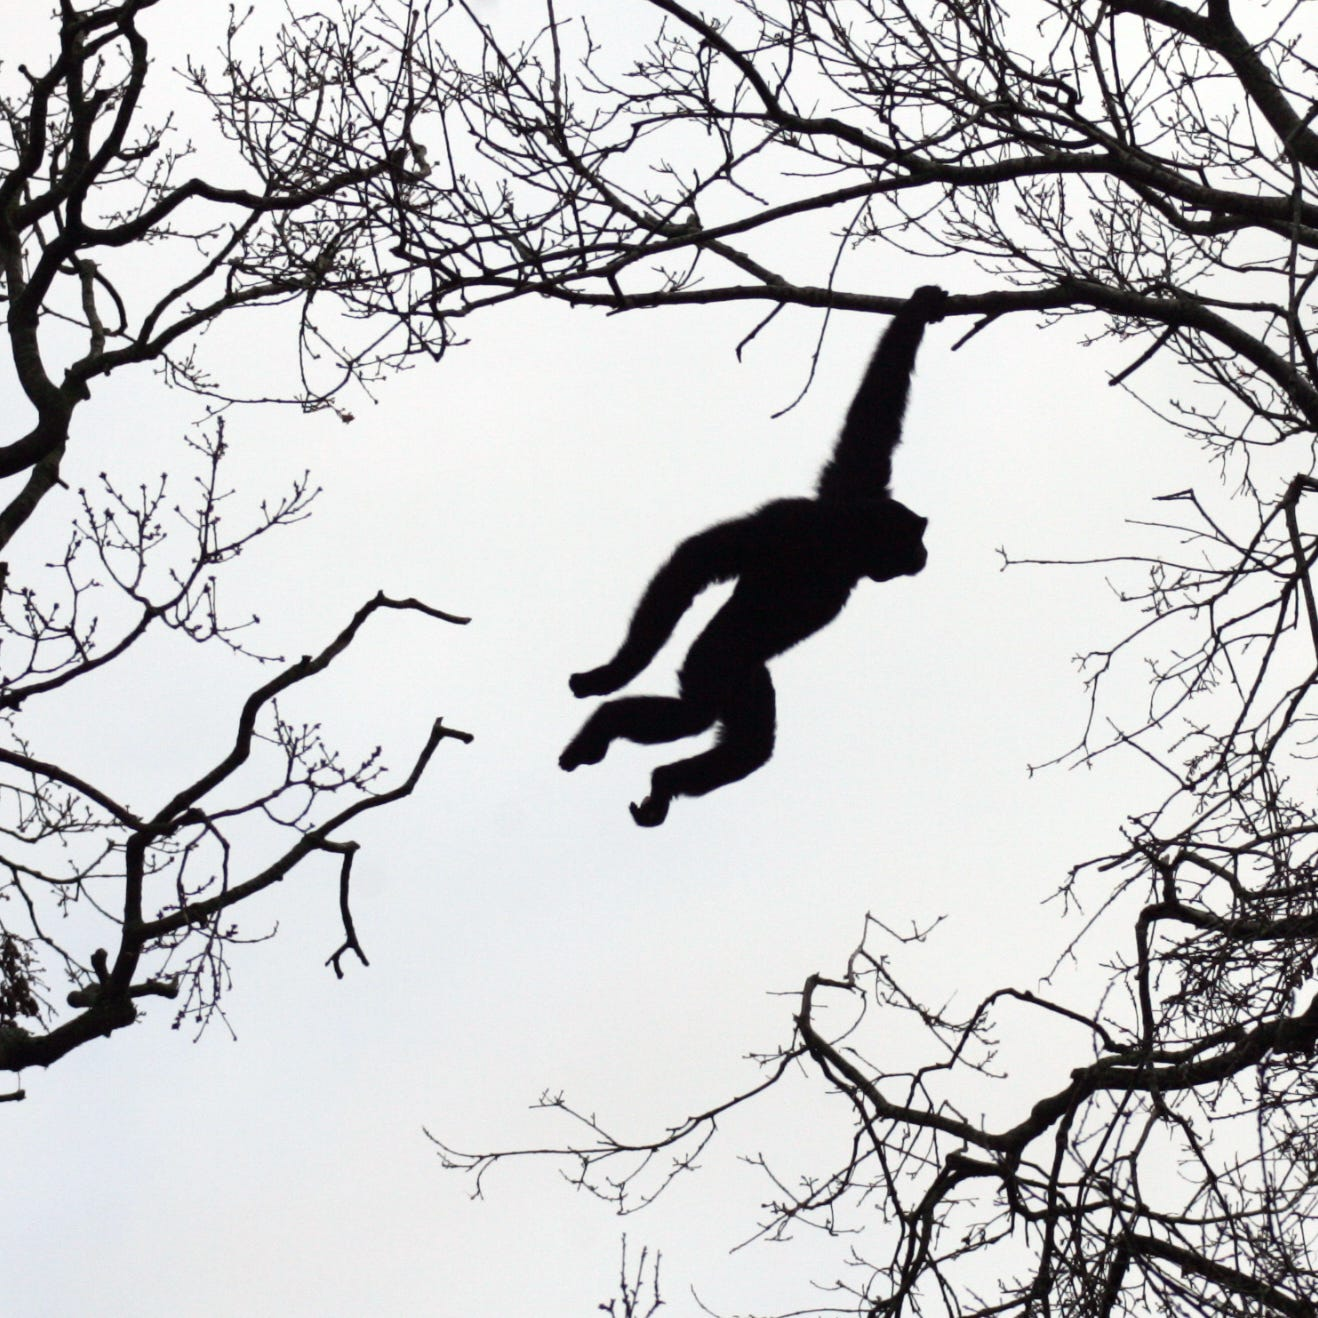 A siamang gibbon is shown here swinging through trees in county Cork, Ireland. Eloise, a 37-year-old siamang gave birth to a baby at the San Diego Zoo in November, despite having been on birth control for years.